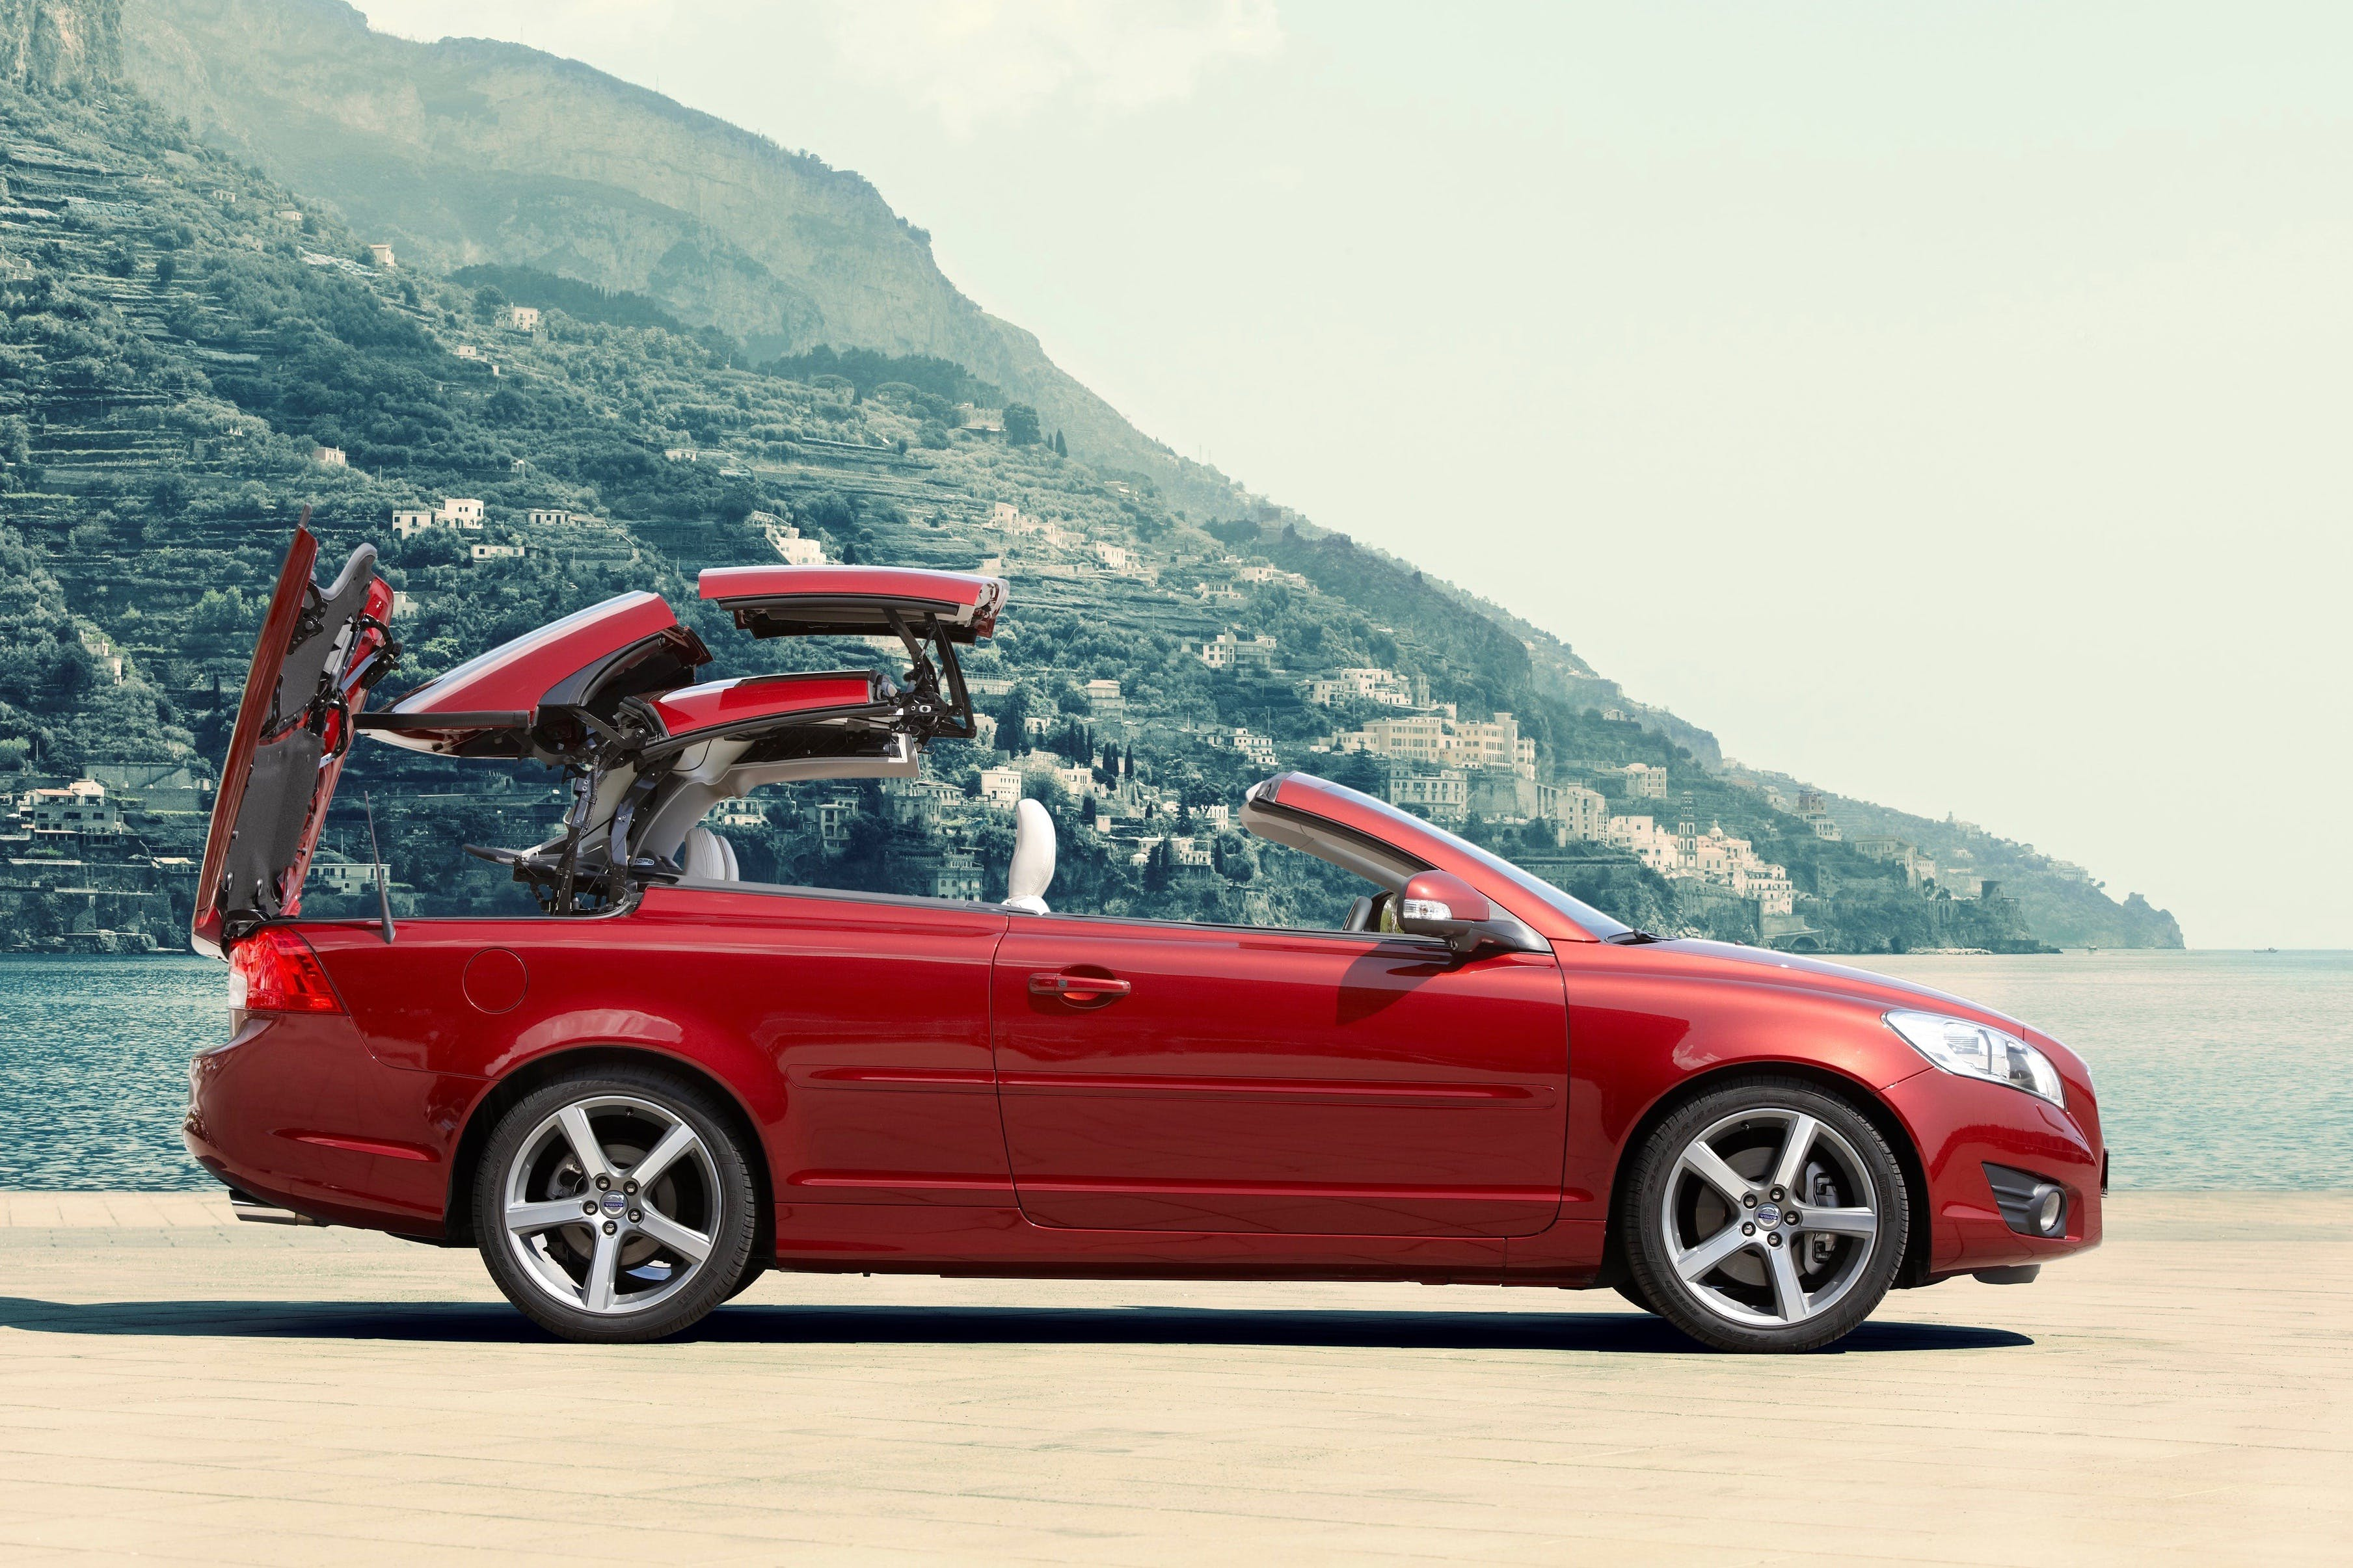 5 Best Used Convertibles with Retractable Hardtops | CARFAX Blog